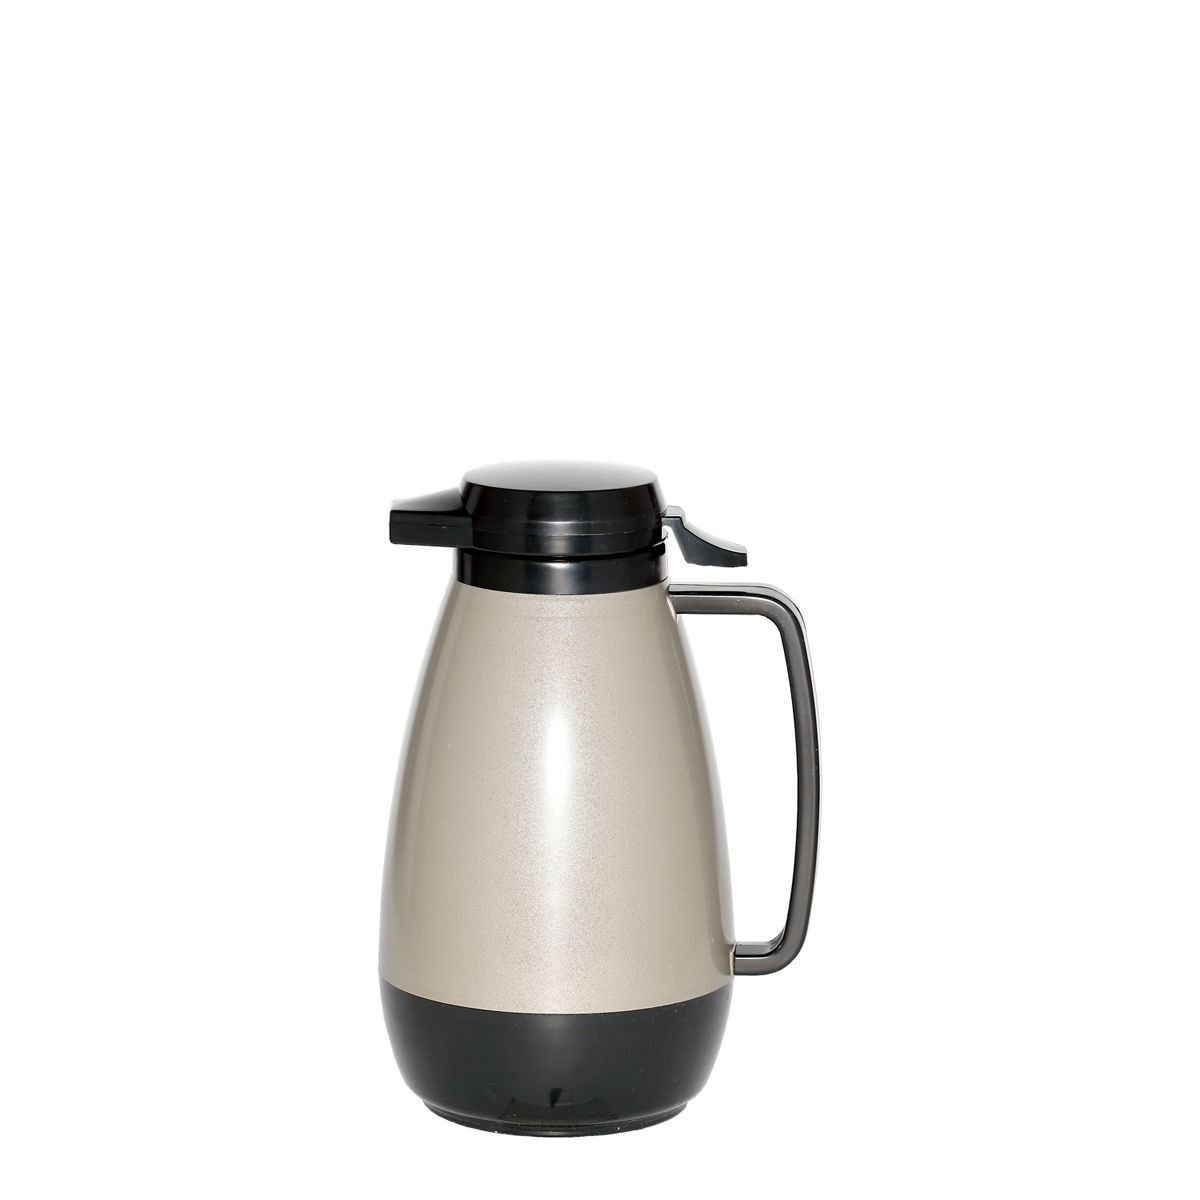 Service Ideas PB101MG Thermo-Serv Metallic Grey Push Button Coffee Server, 1 Liter (34 oz.)